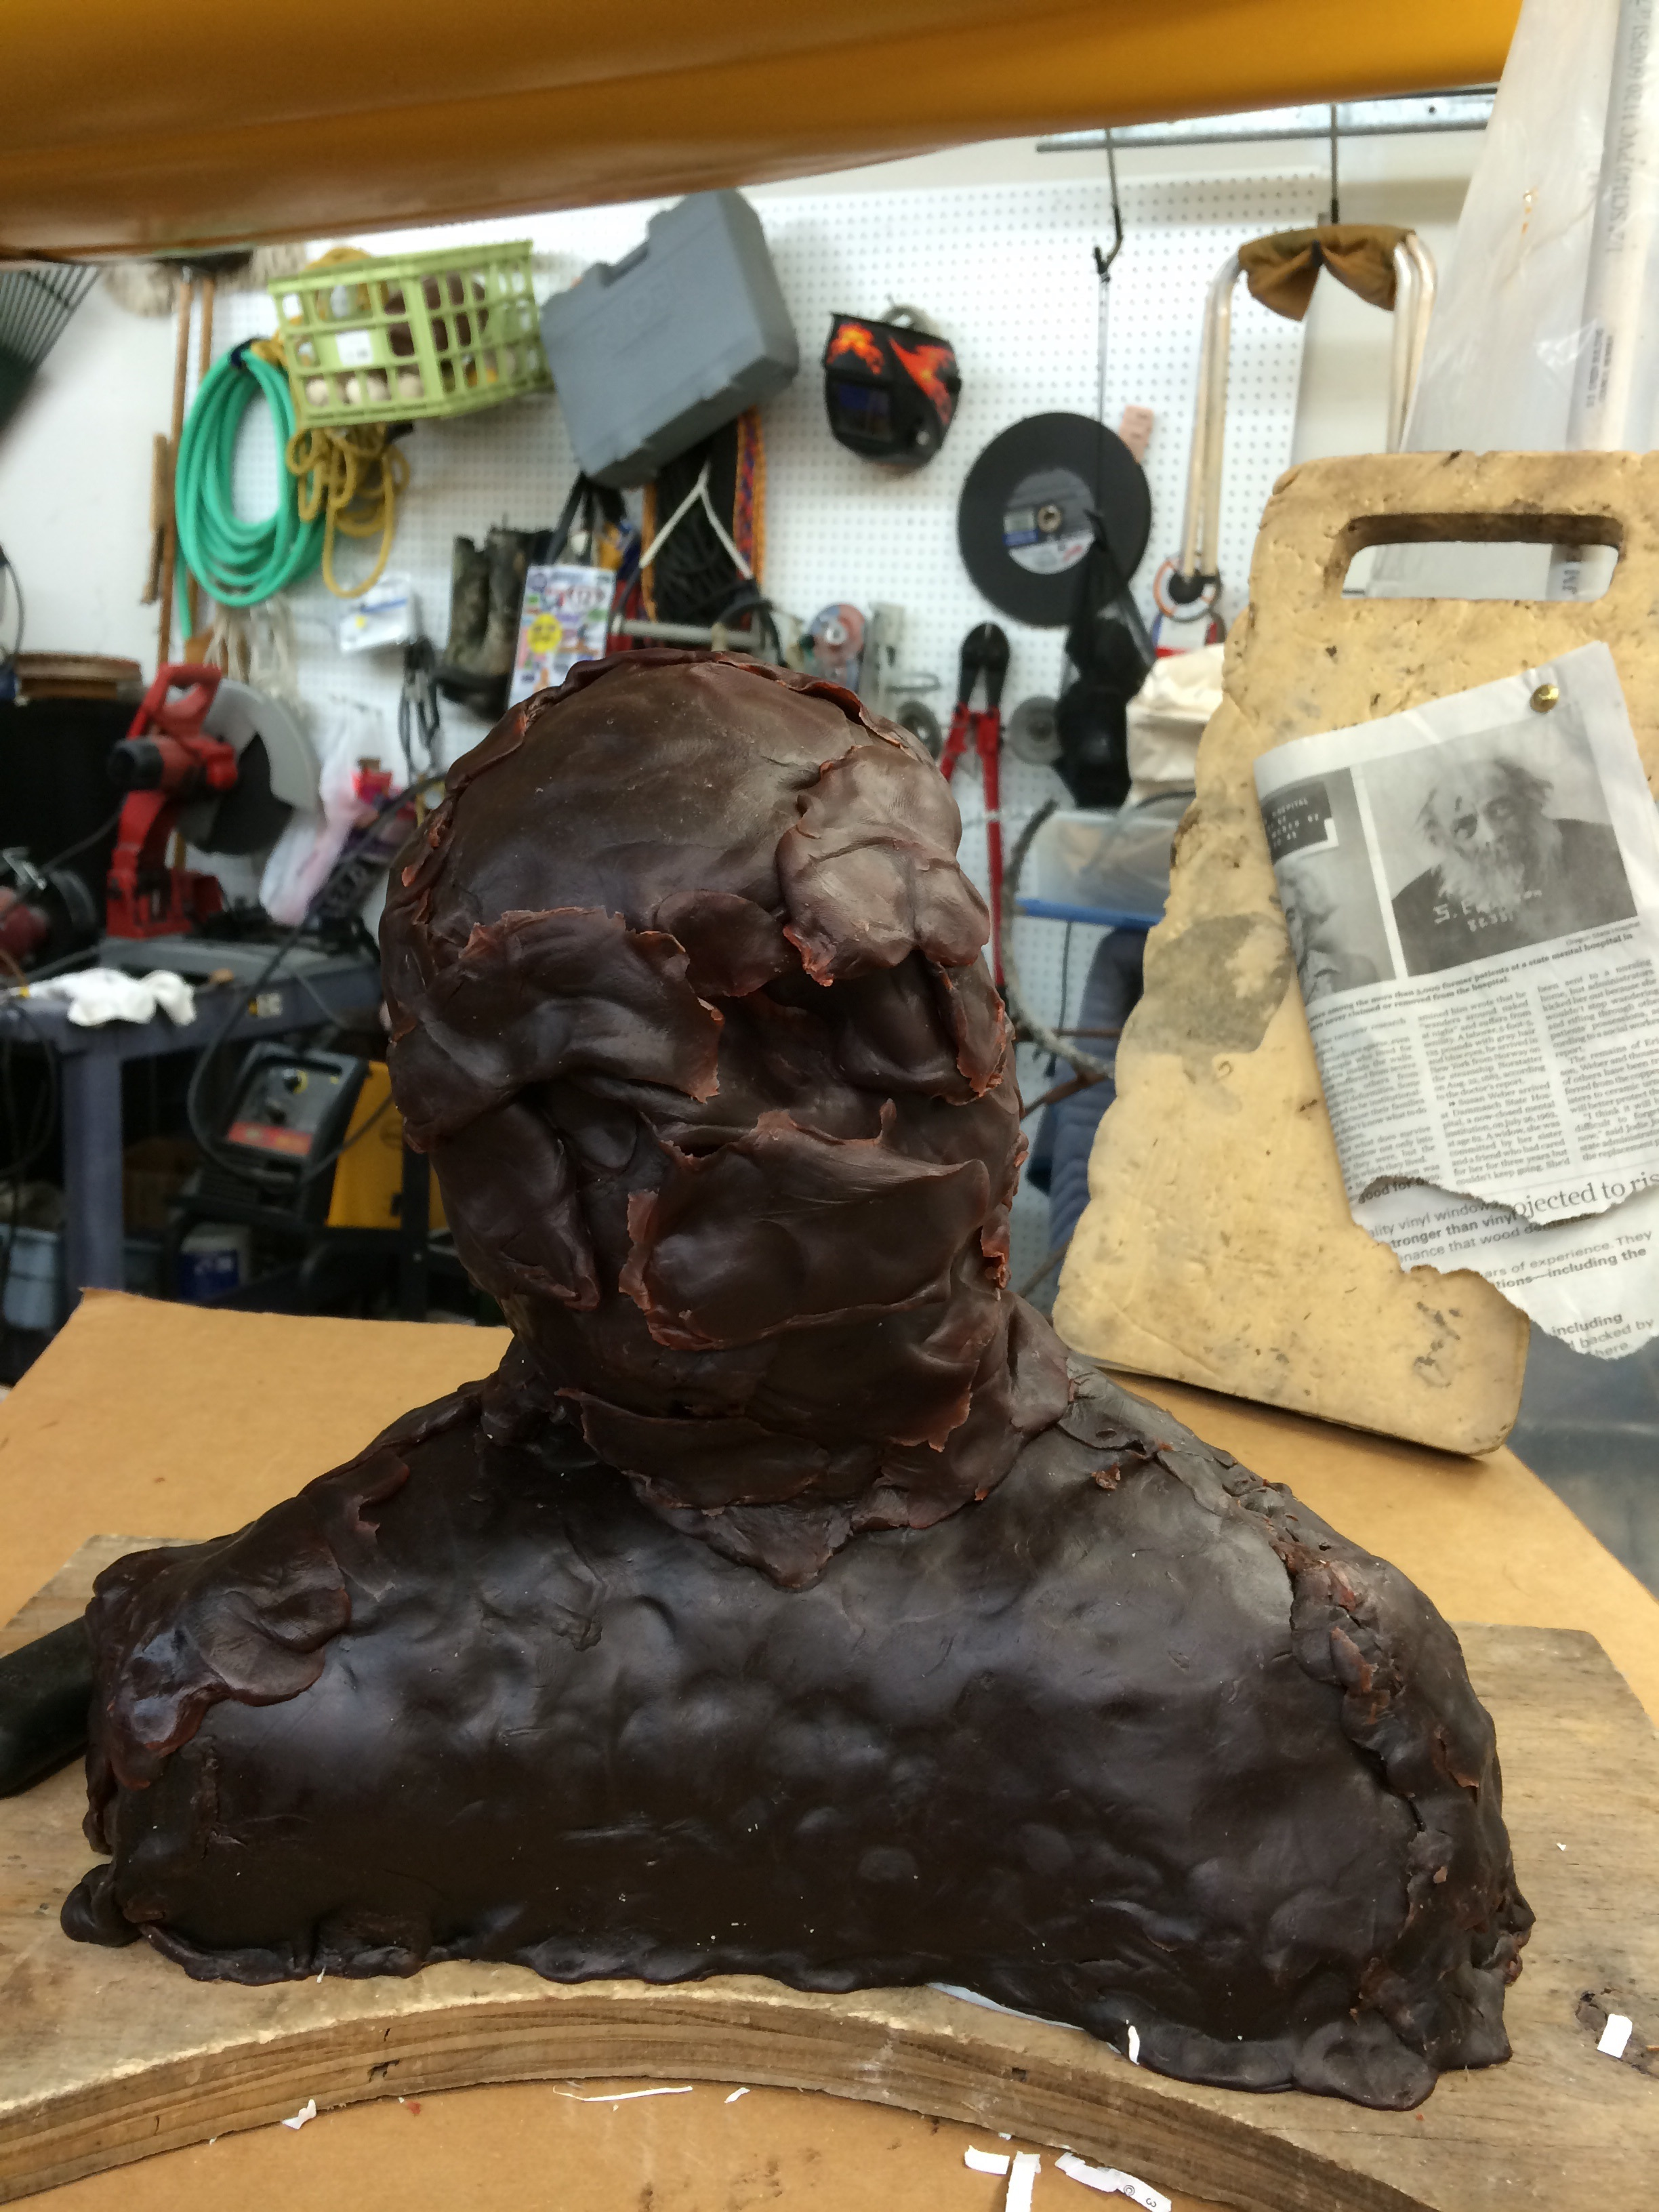 Building up the facial features.